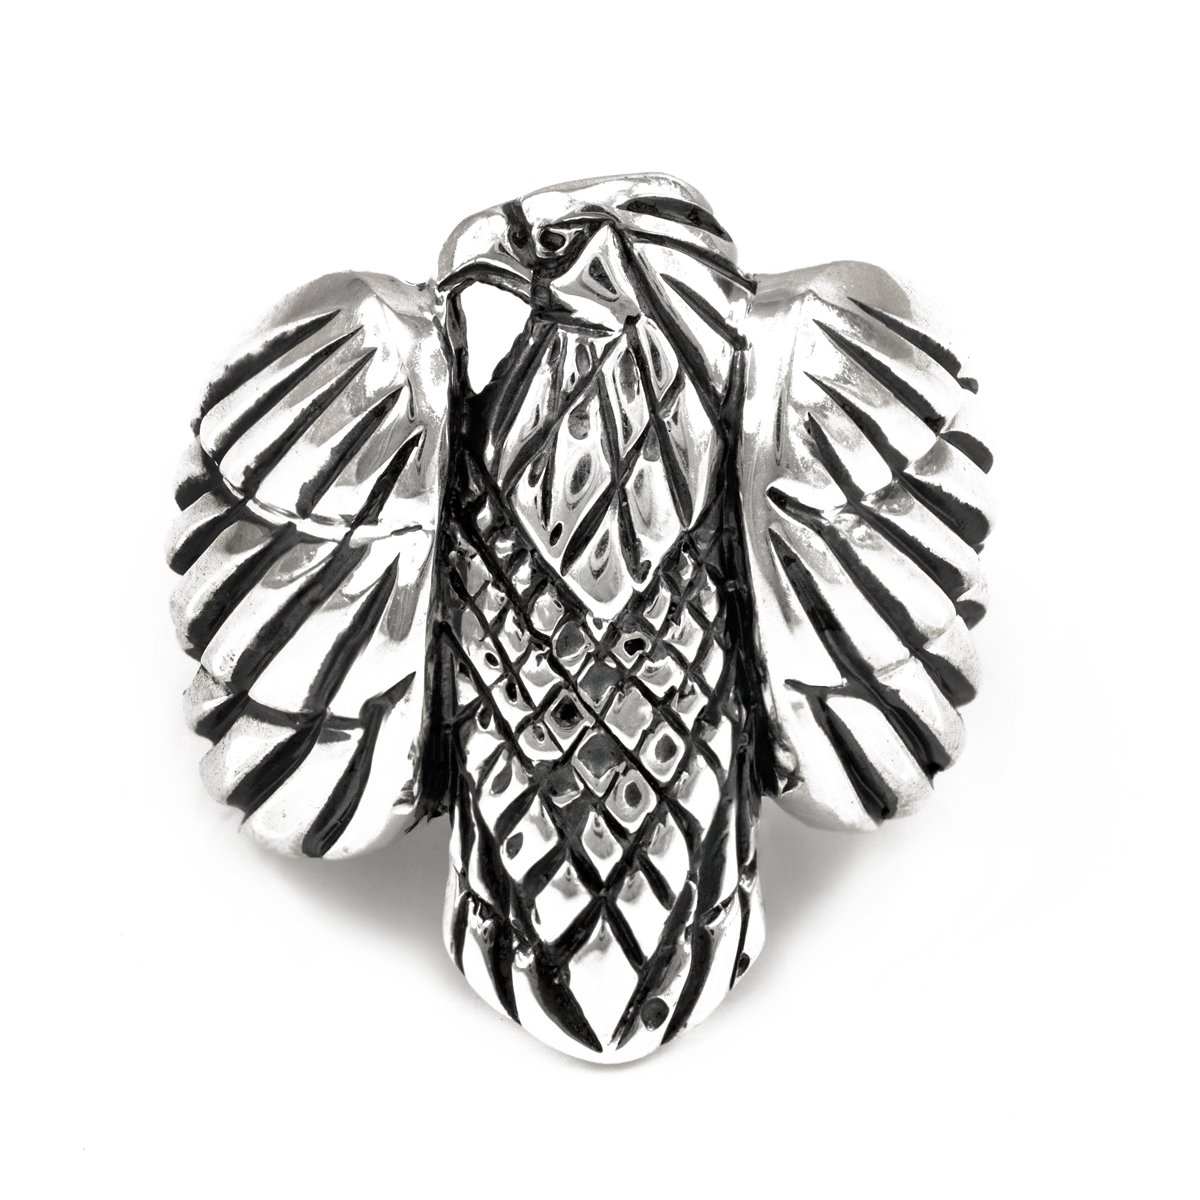 Polished 925 Sterling Silver American Eagle Men's Ring (Size 9)